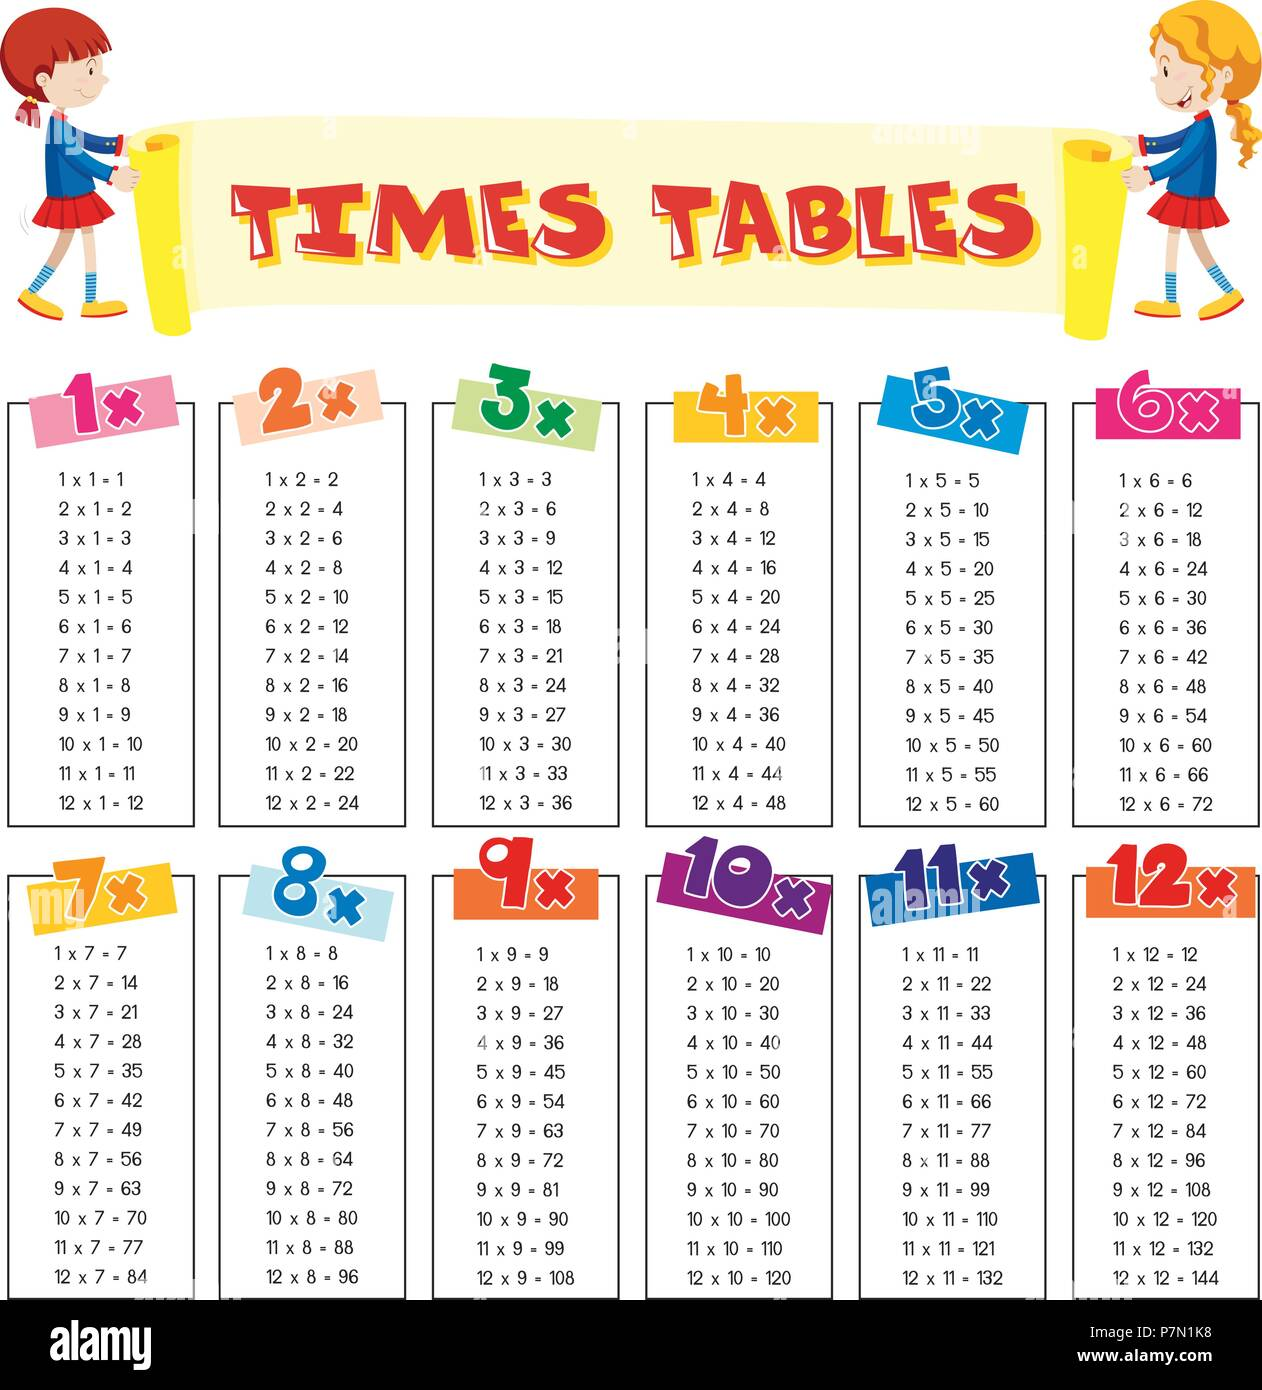 Math Times Tables Sheet Illustration Stock Vector Art